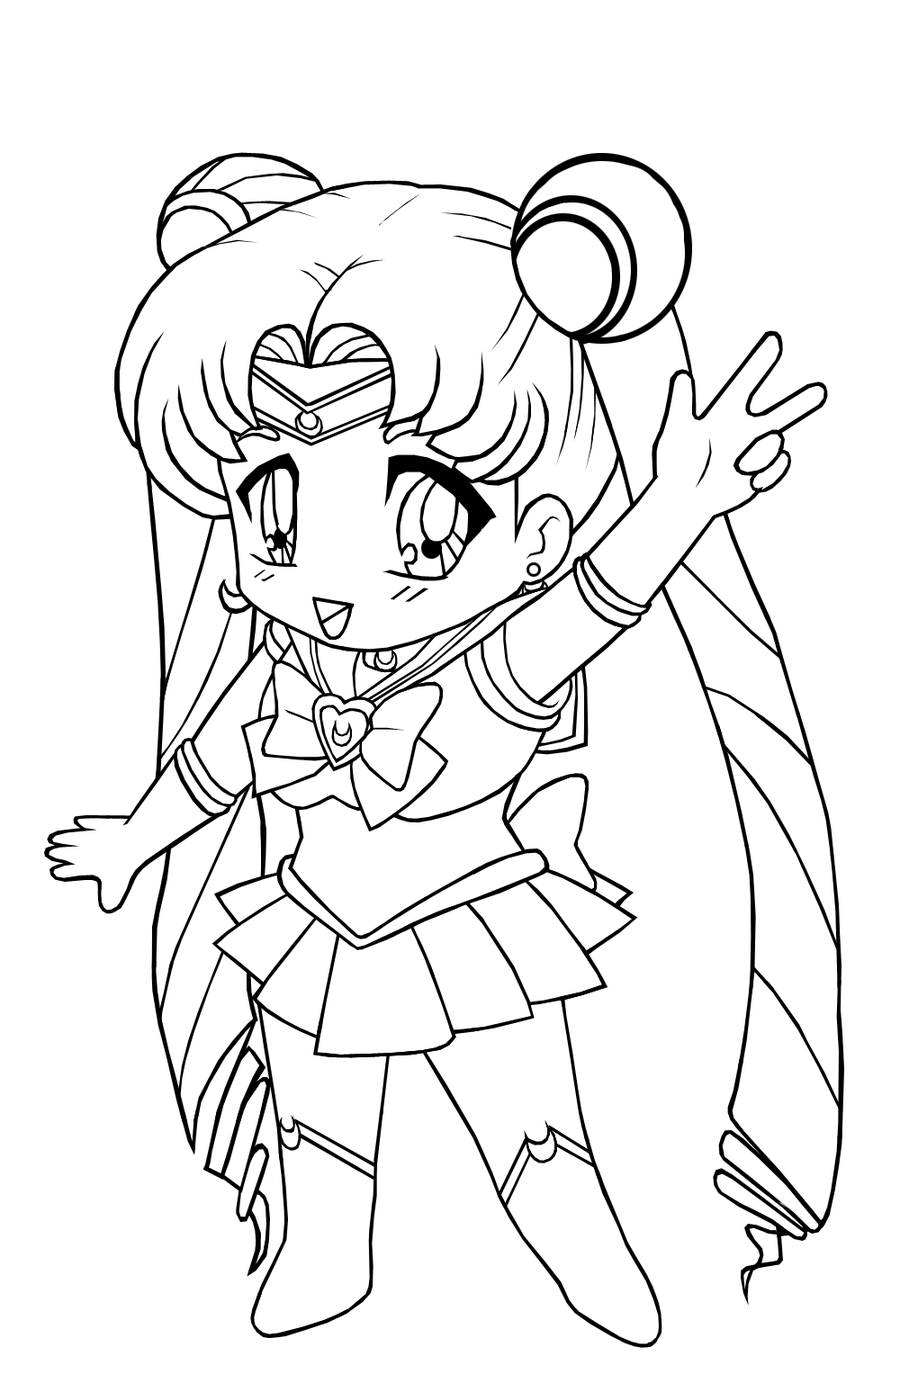 coloring sheet girl moxie coloring pages for girls to print for free coloring girl sheet